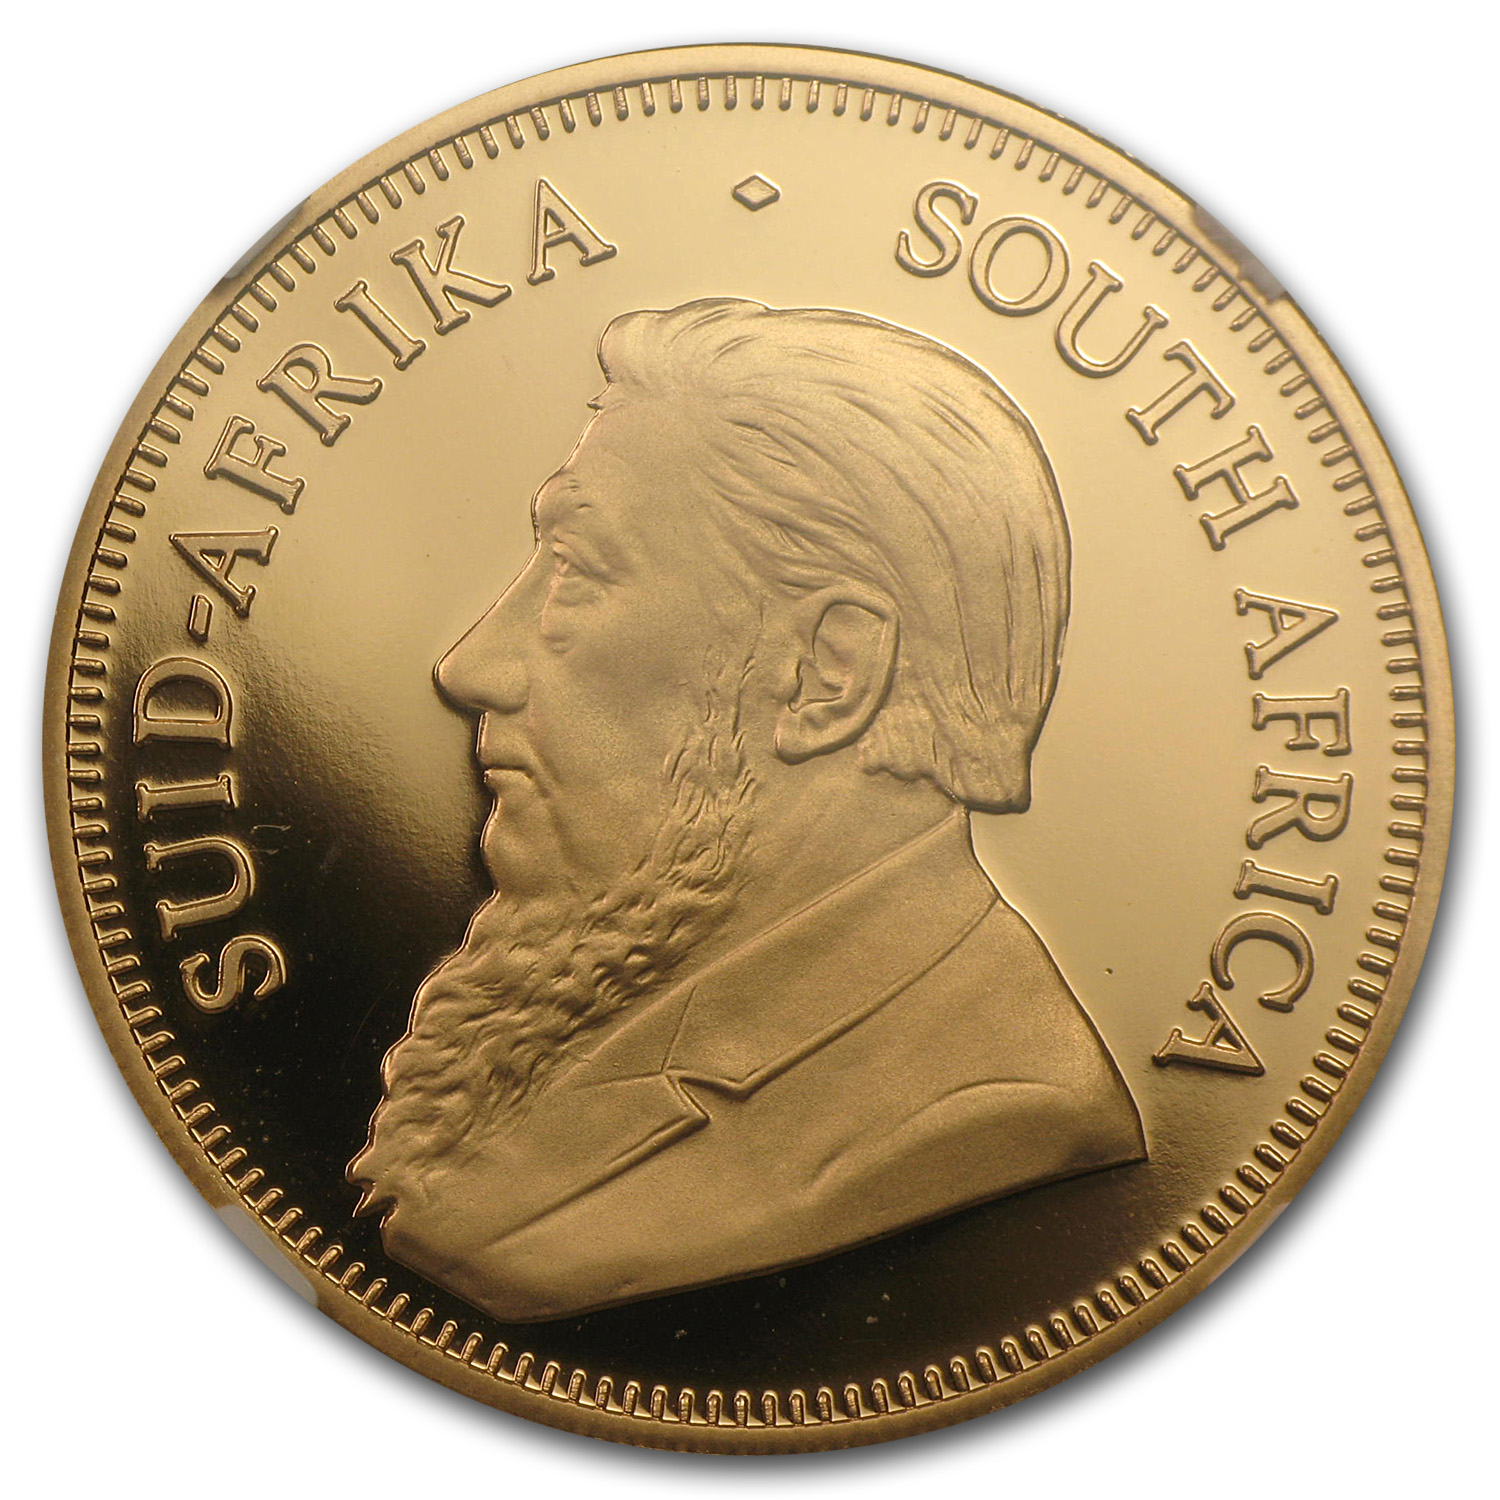 2013 South Africa 1 oz Gold Krugerrand PF-69 NGC (Coronation)